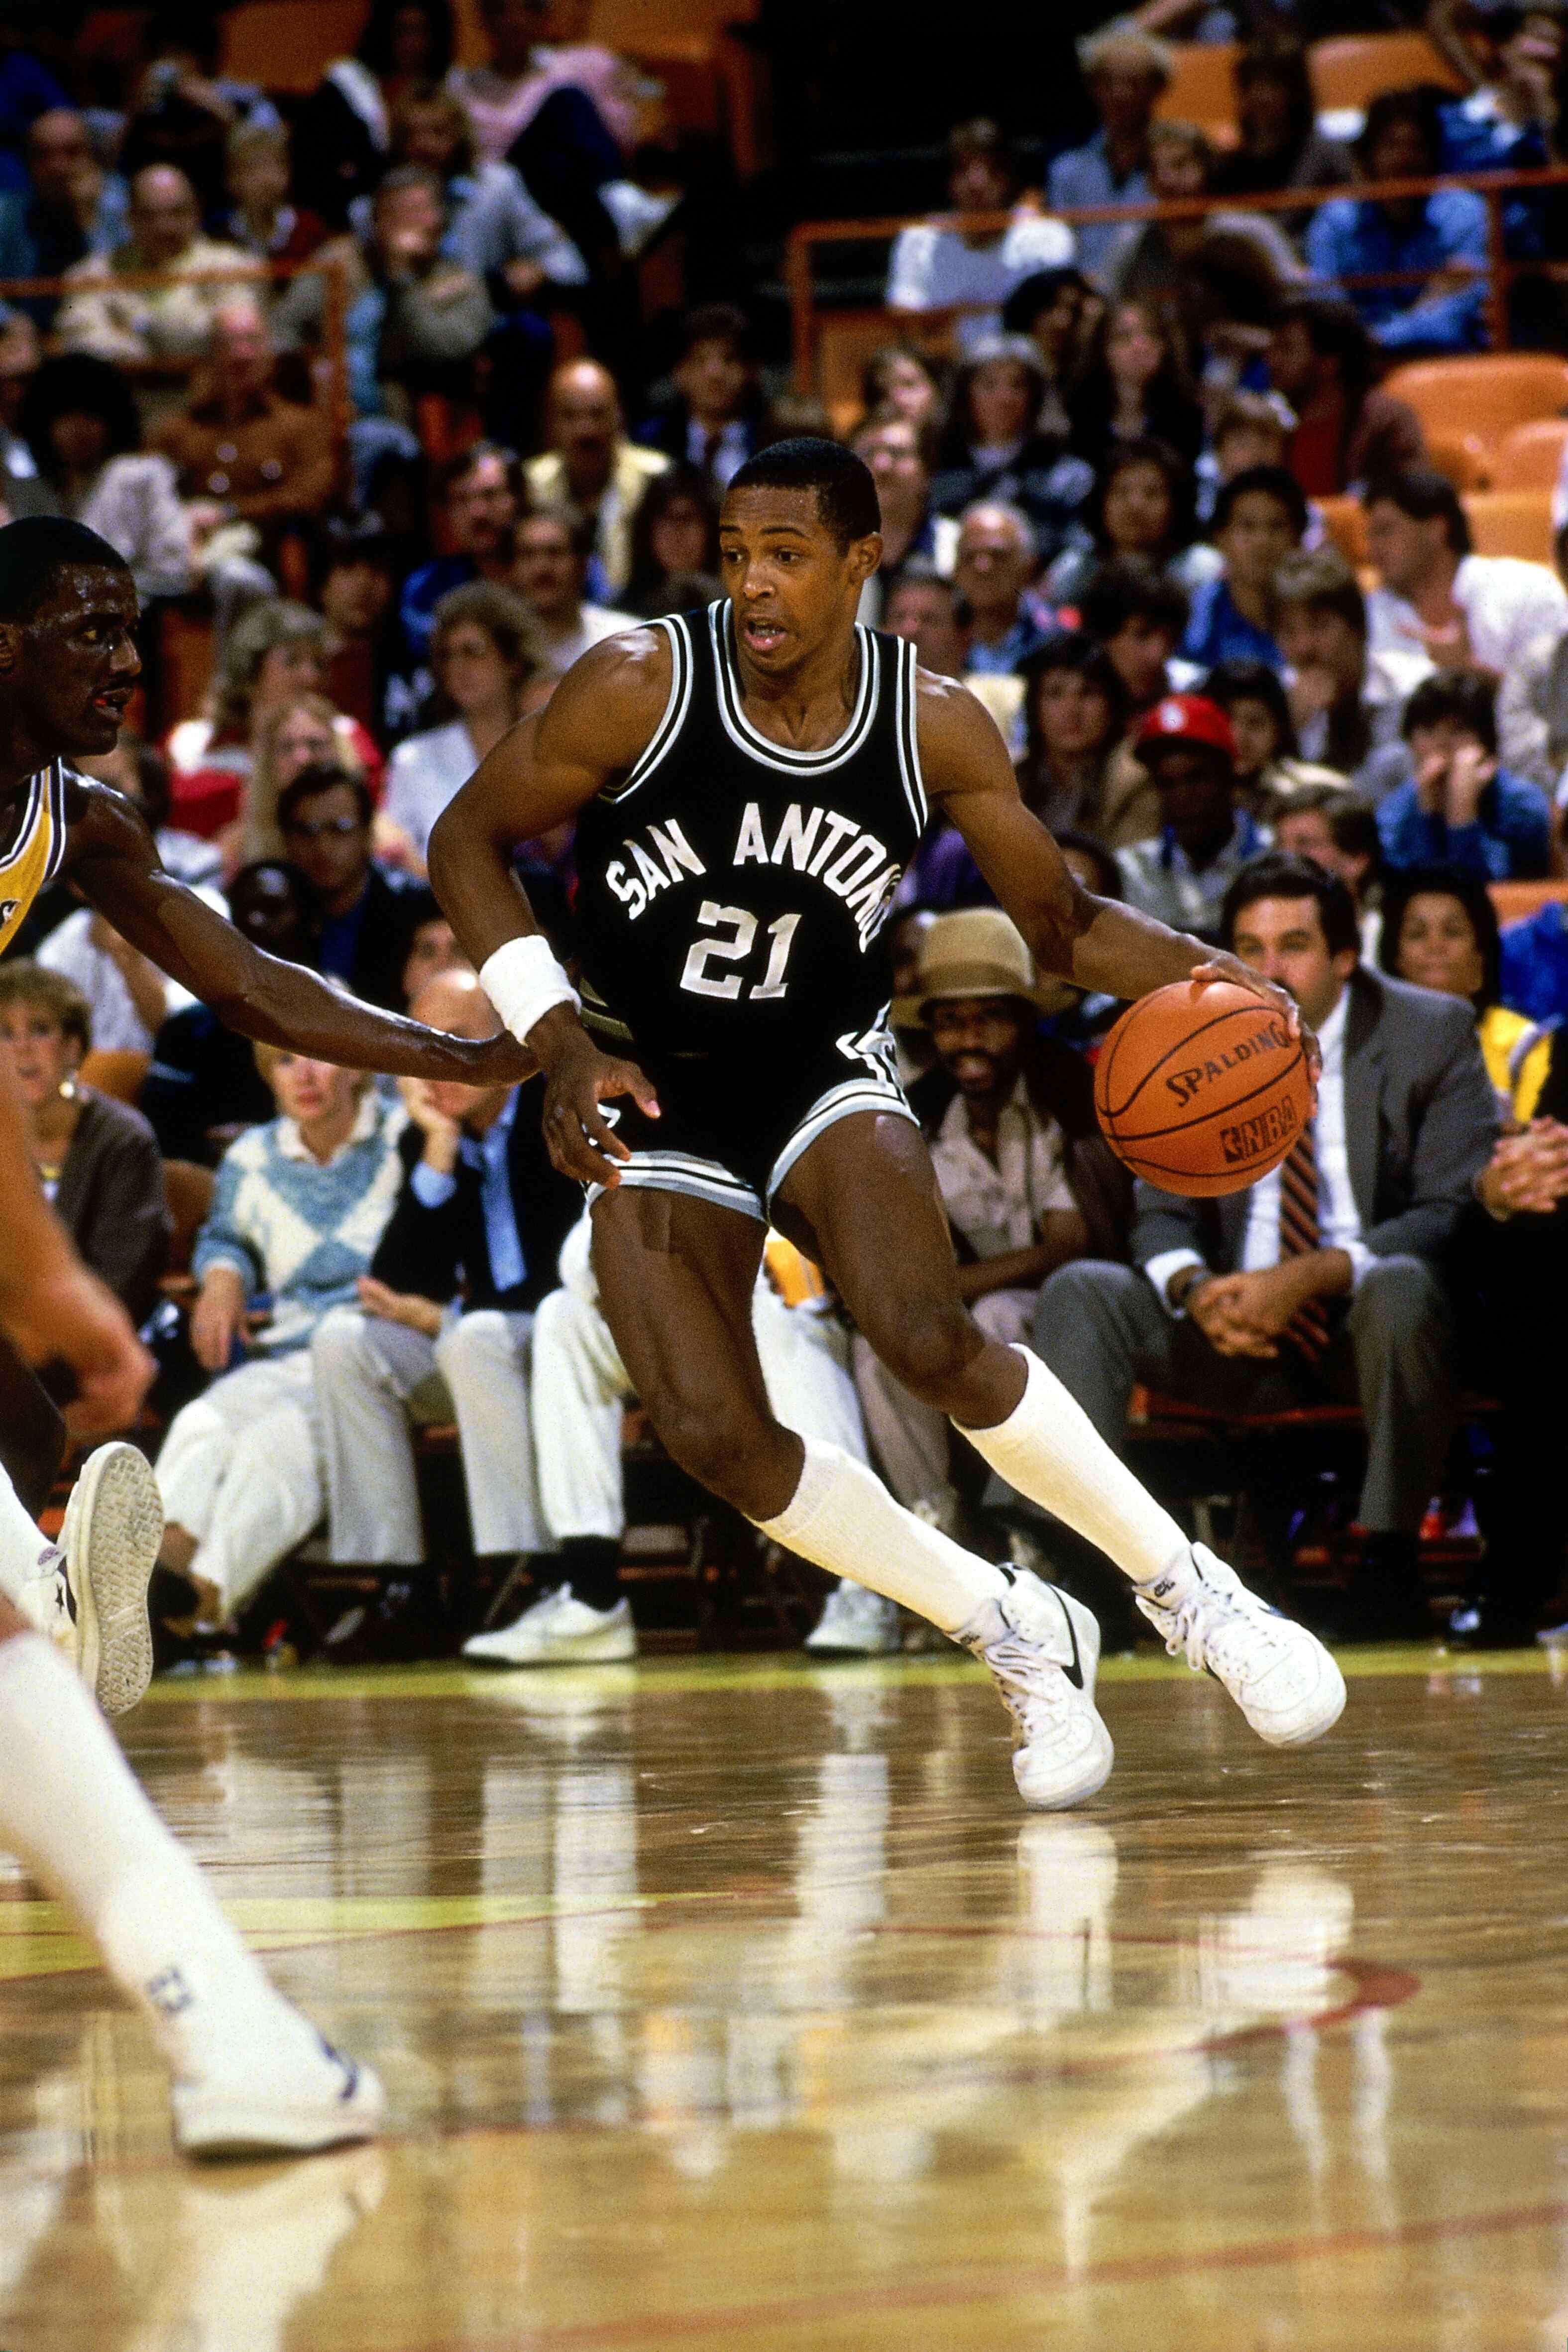 LOS ANGELES - 1986: Alvin Robertson #21 of the San Antonio Spurs drives to the basket during a 1986 NBA Season game against the Los Angeles Lakers at the Forum in Los Angeles, California.